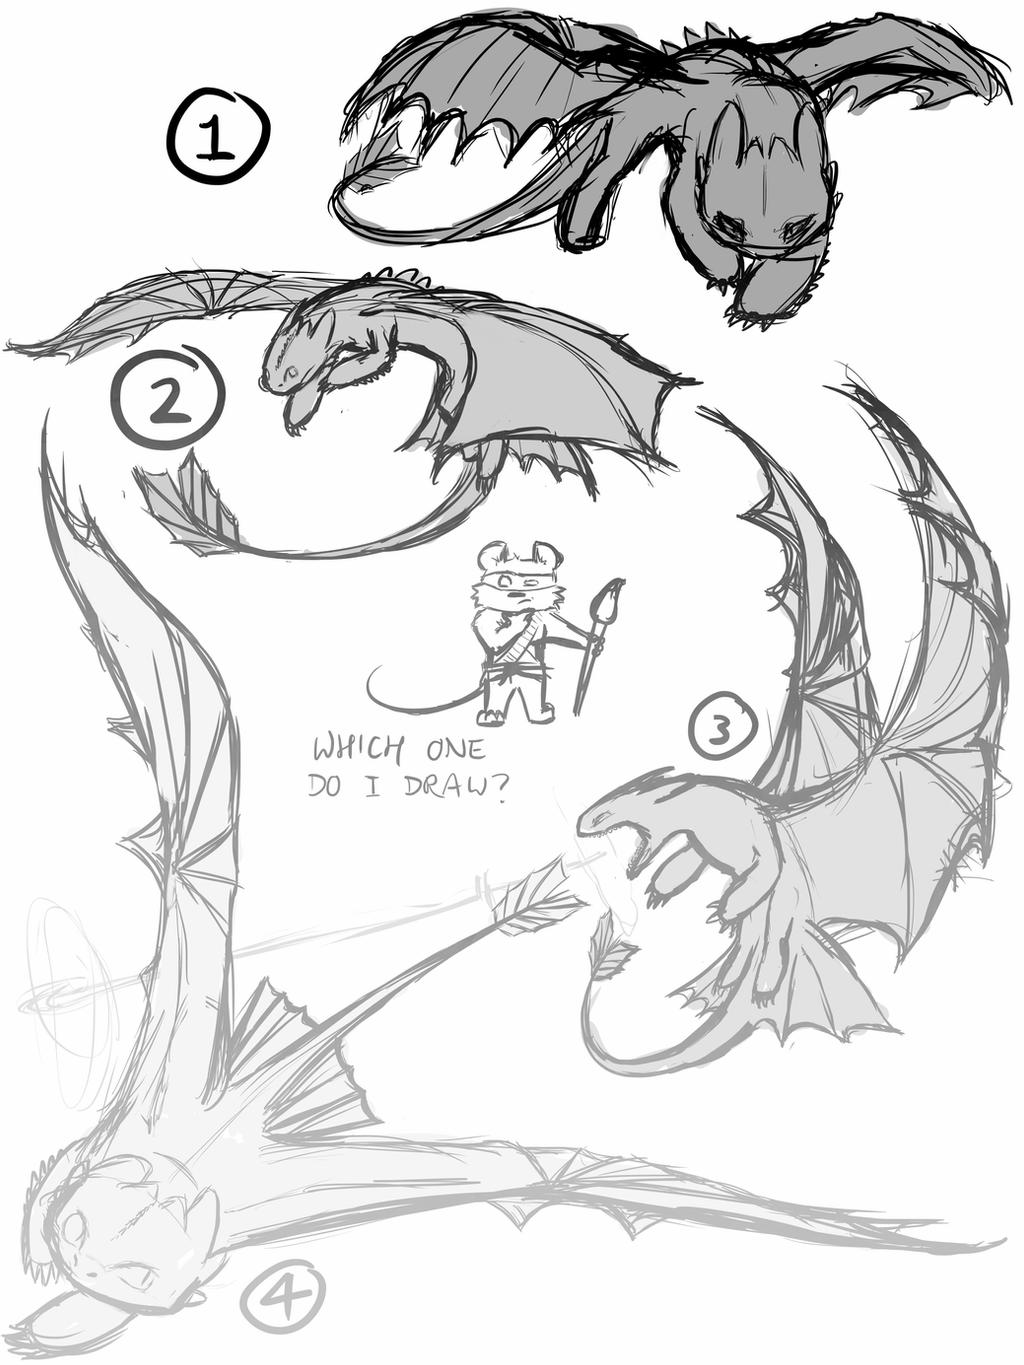 toothless dragon drawing toothless drawing how to train your dragon black and white toothless drawing dragon